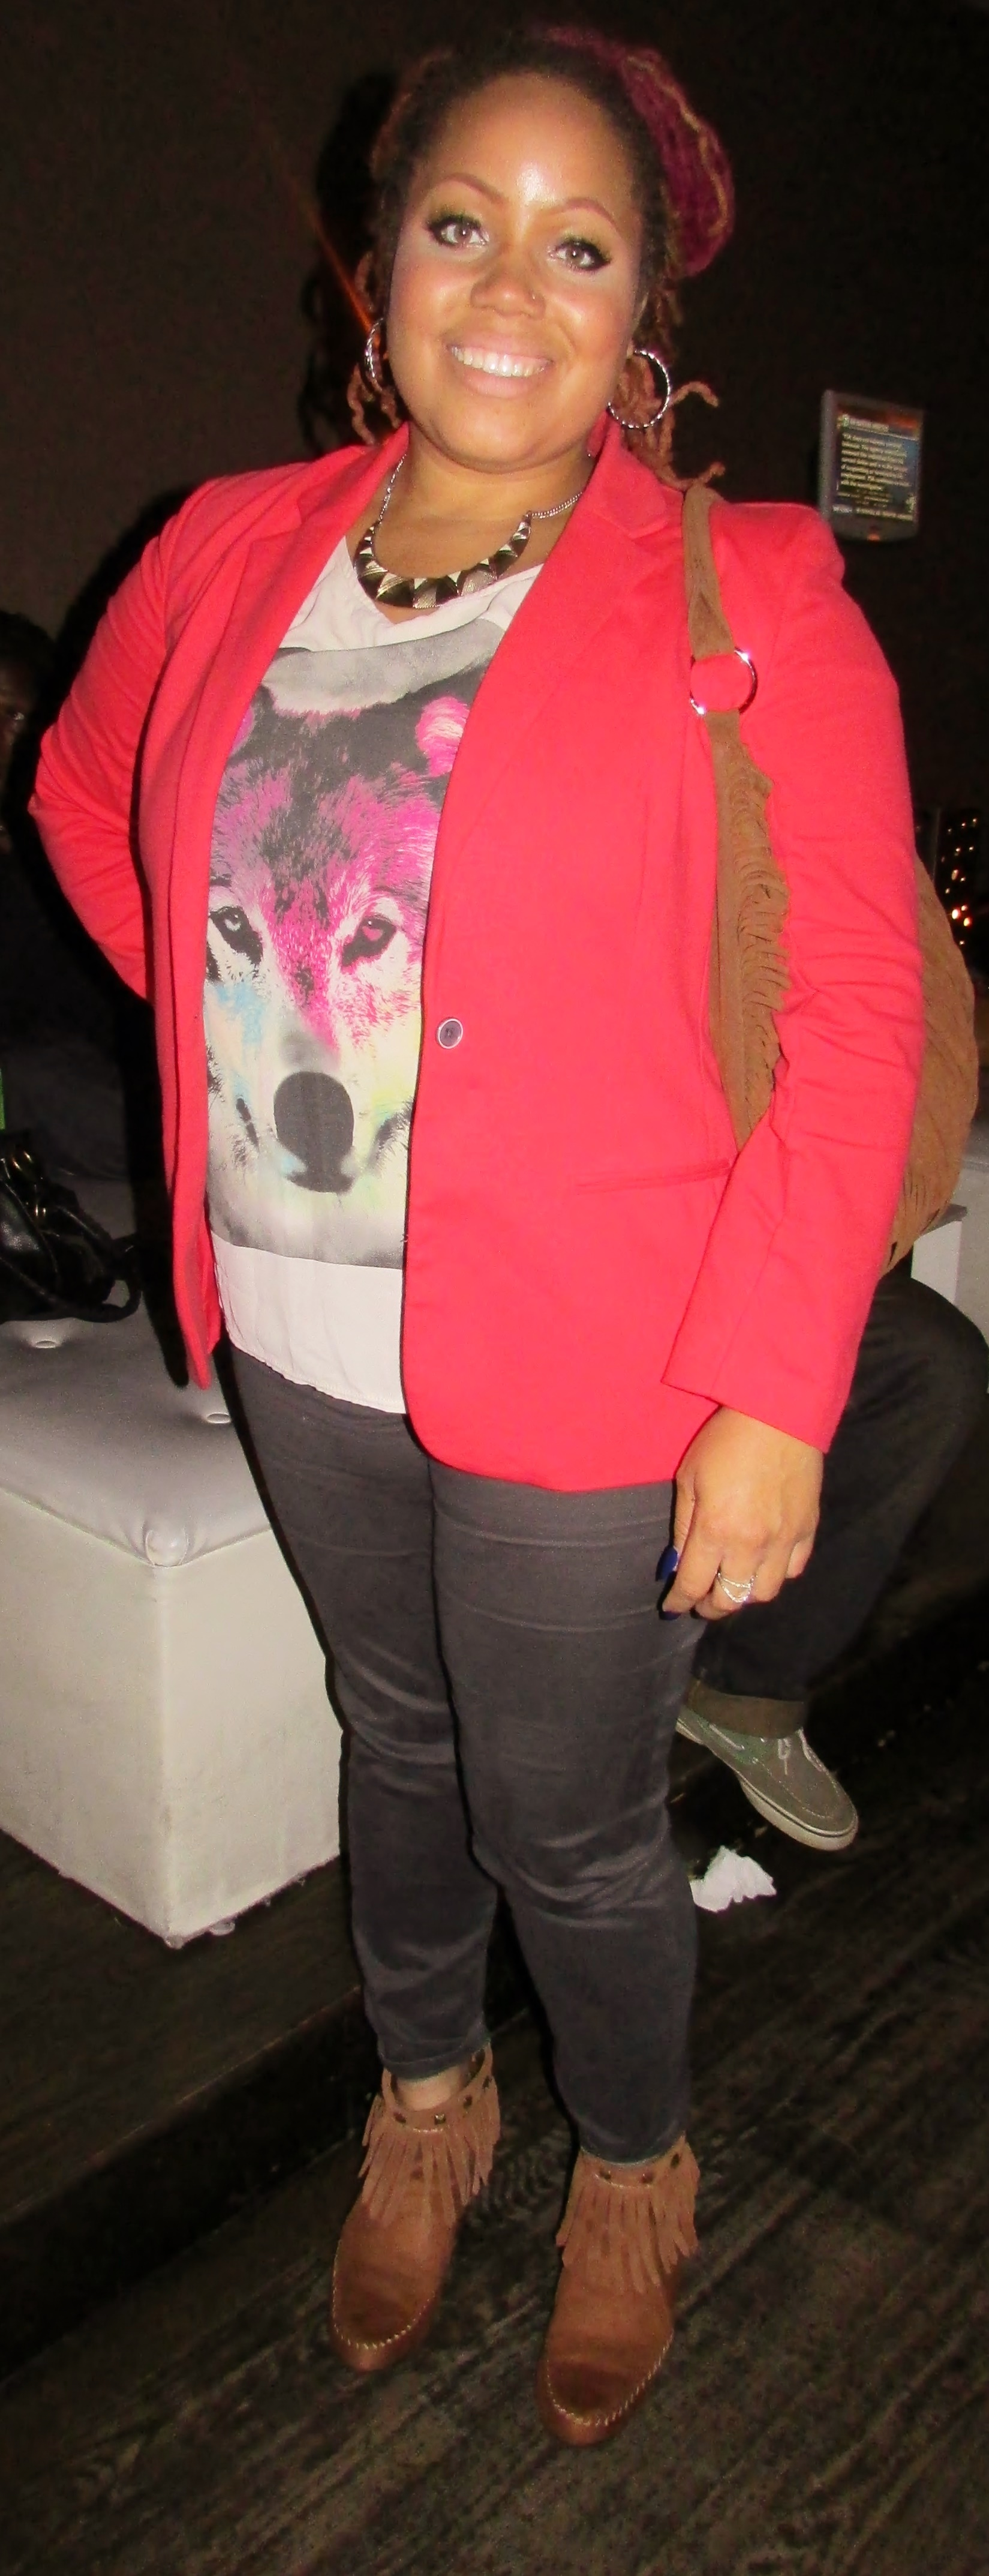 I love a graphic tee a blazer. Without being to matchy, she neutralizes the bottom of the outfit with grey and brown. Balance is key!